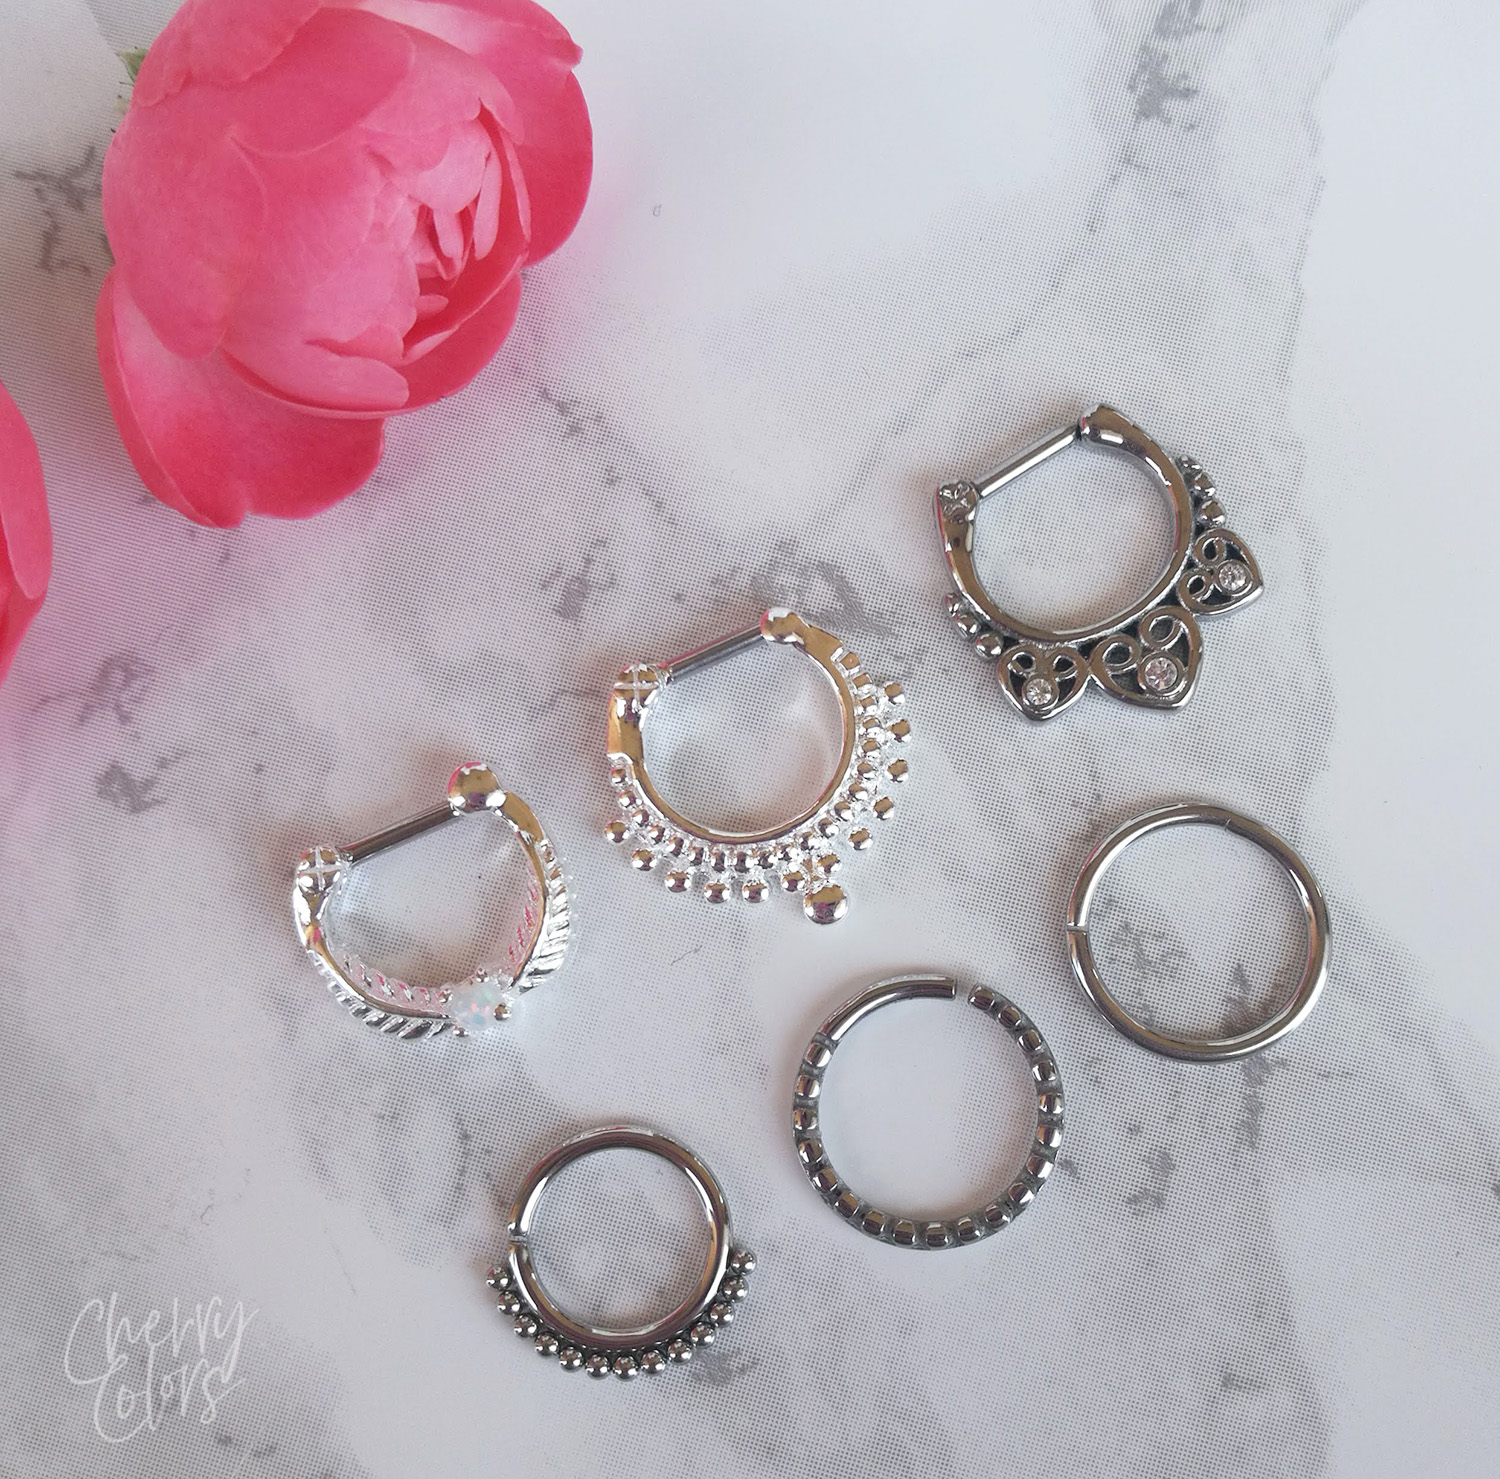 SEPTUM PIERCINGS FOR ALL OCCASIONS